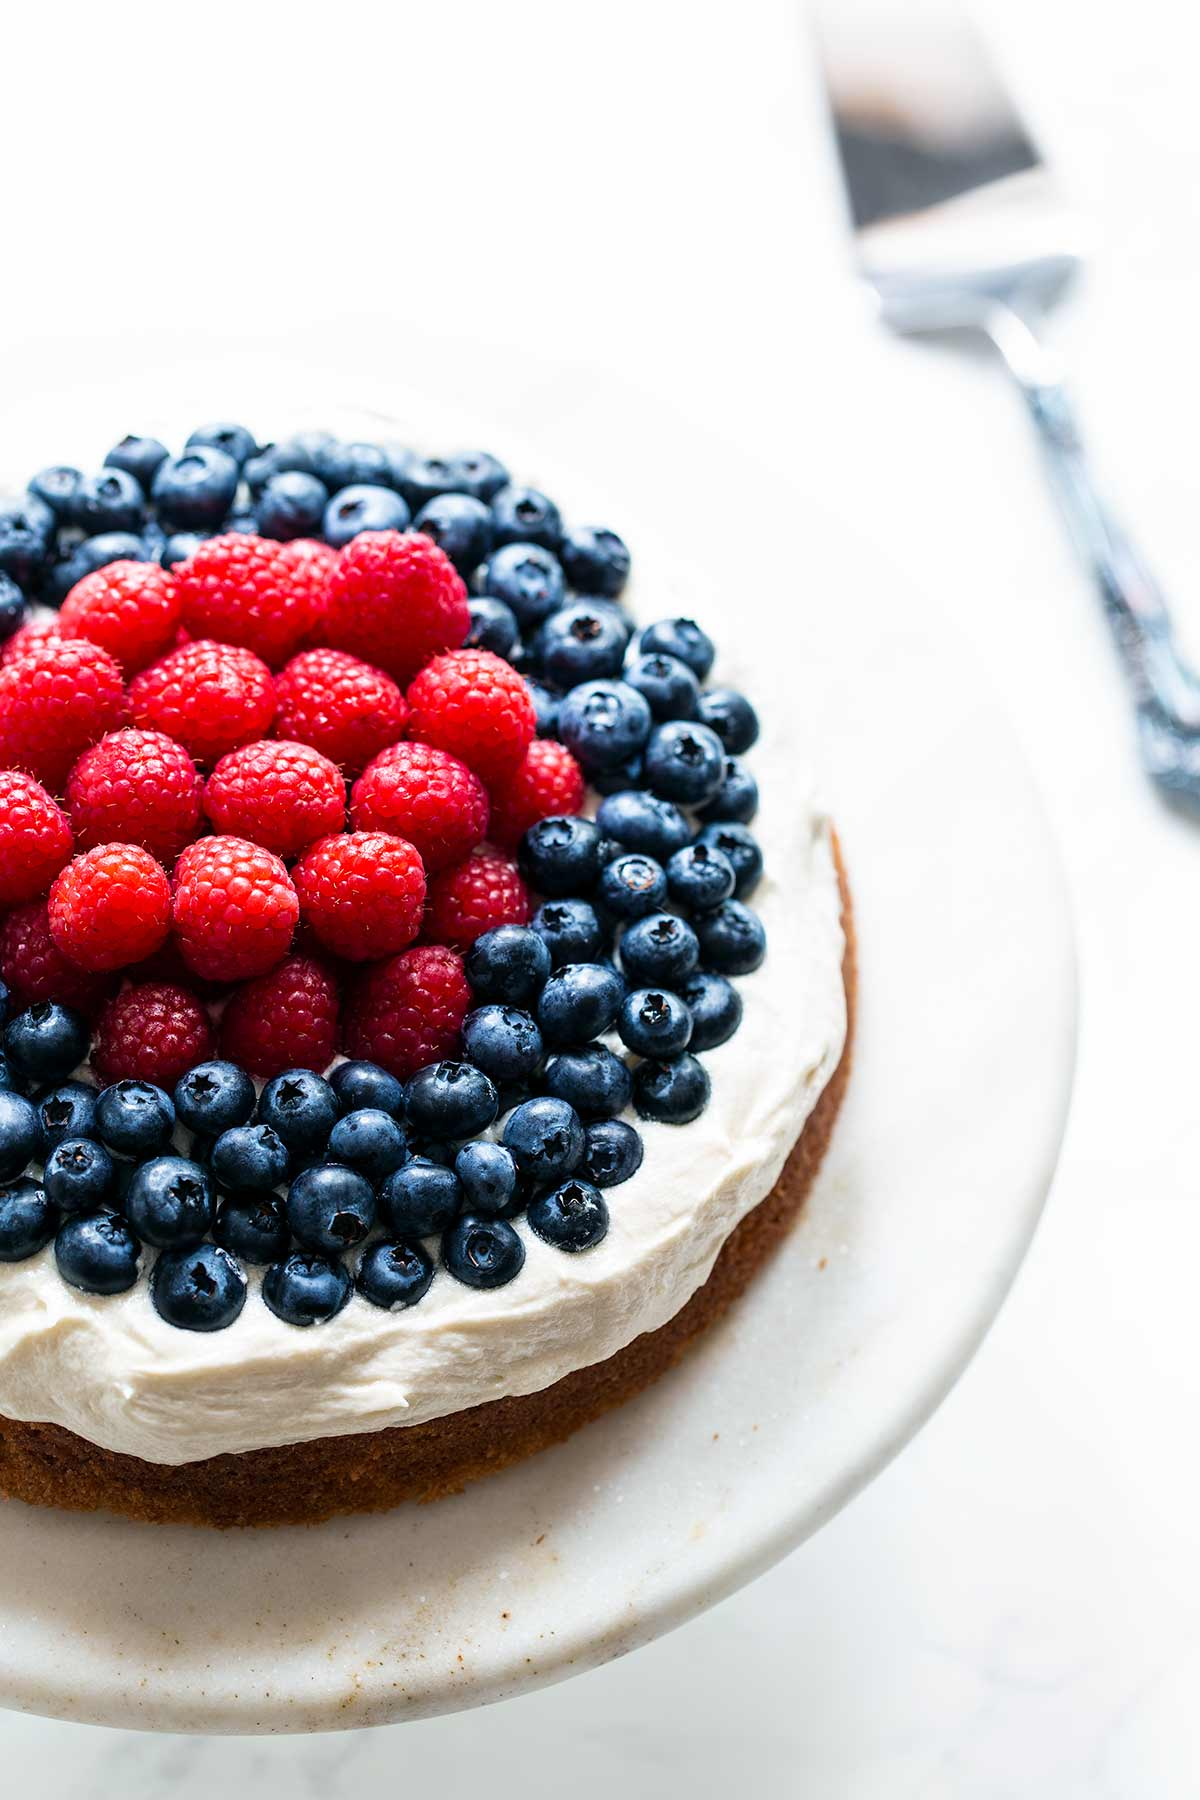 Bright photo of a white cake topped with a thick layer of cream cheese frosting, topped with raspberries in the center and blueberries toward the edge.